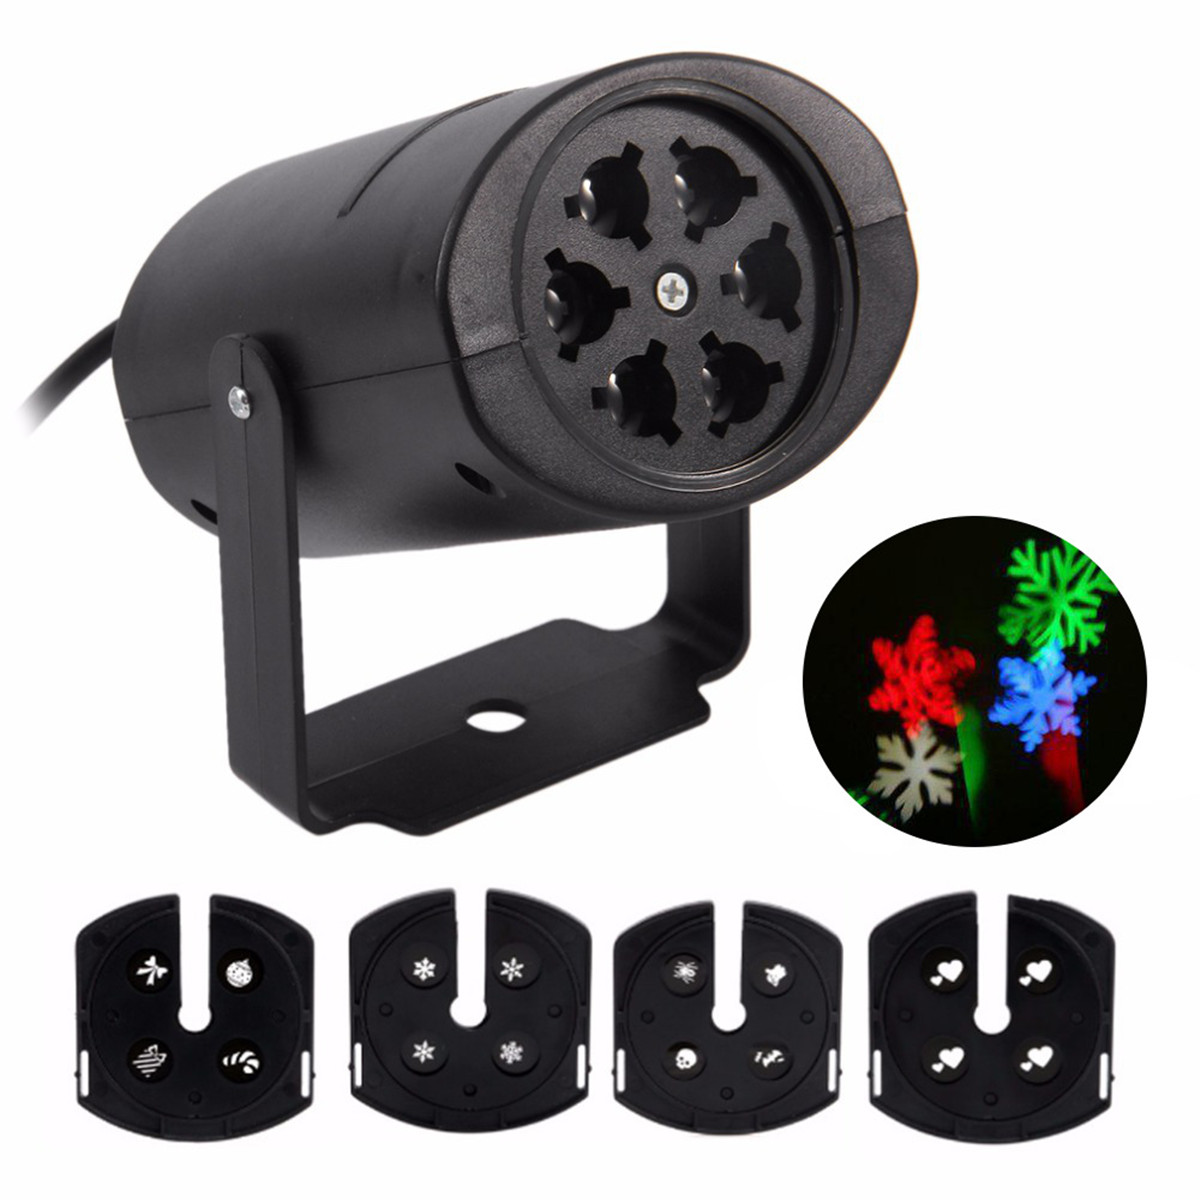 LED Projector Outdoor LED Moving Landscape Lamp Waterproof Disco Karaoke Lights Decorations Christmas Halloween